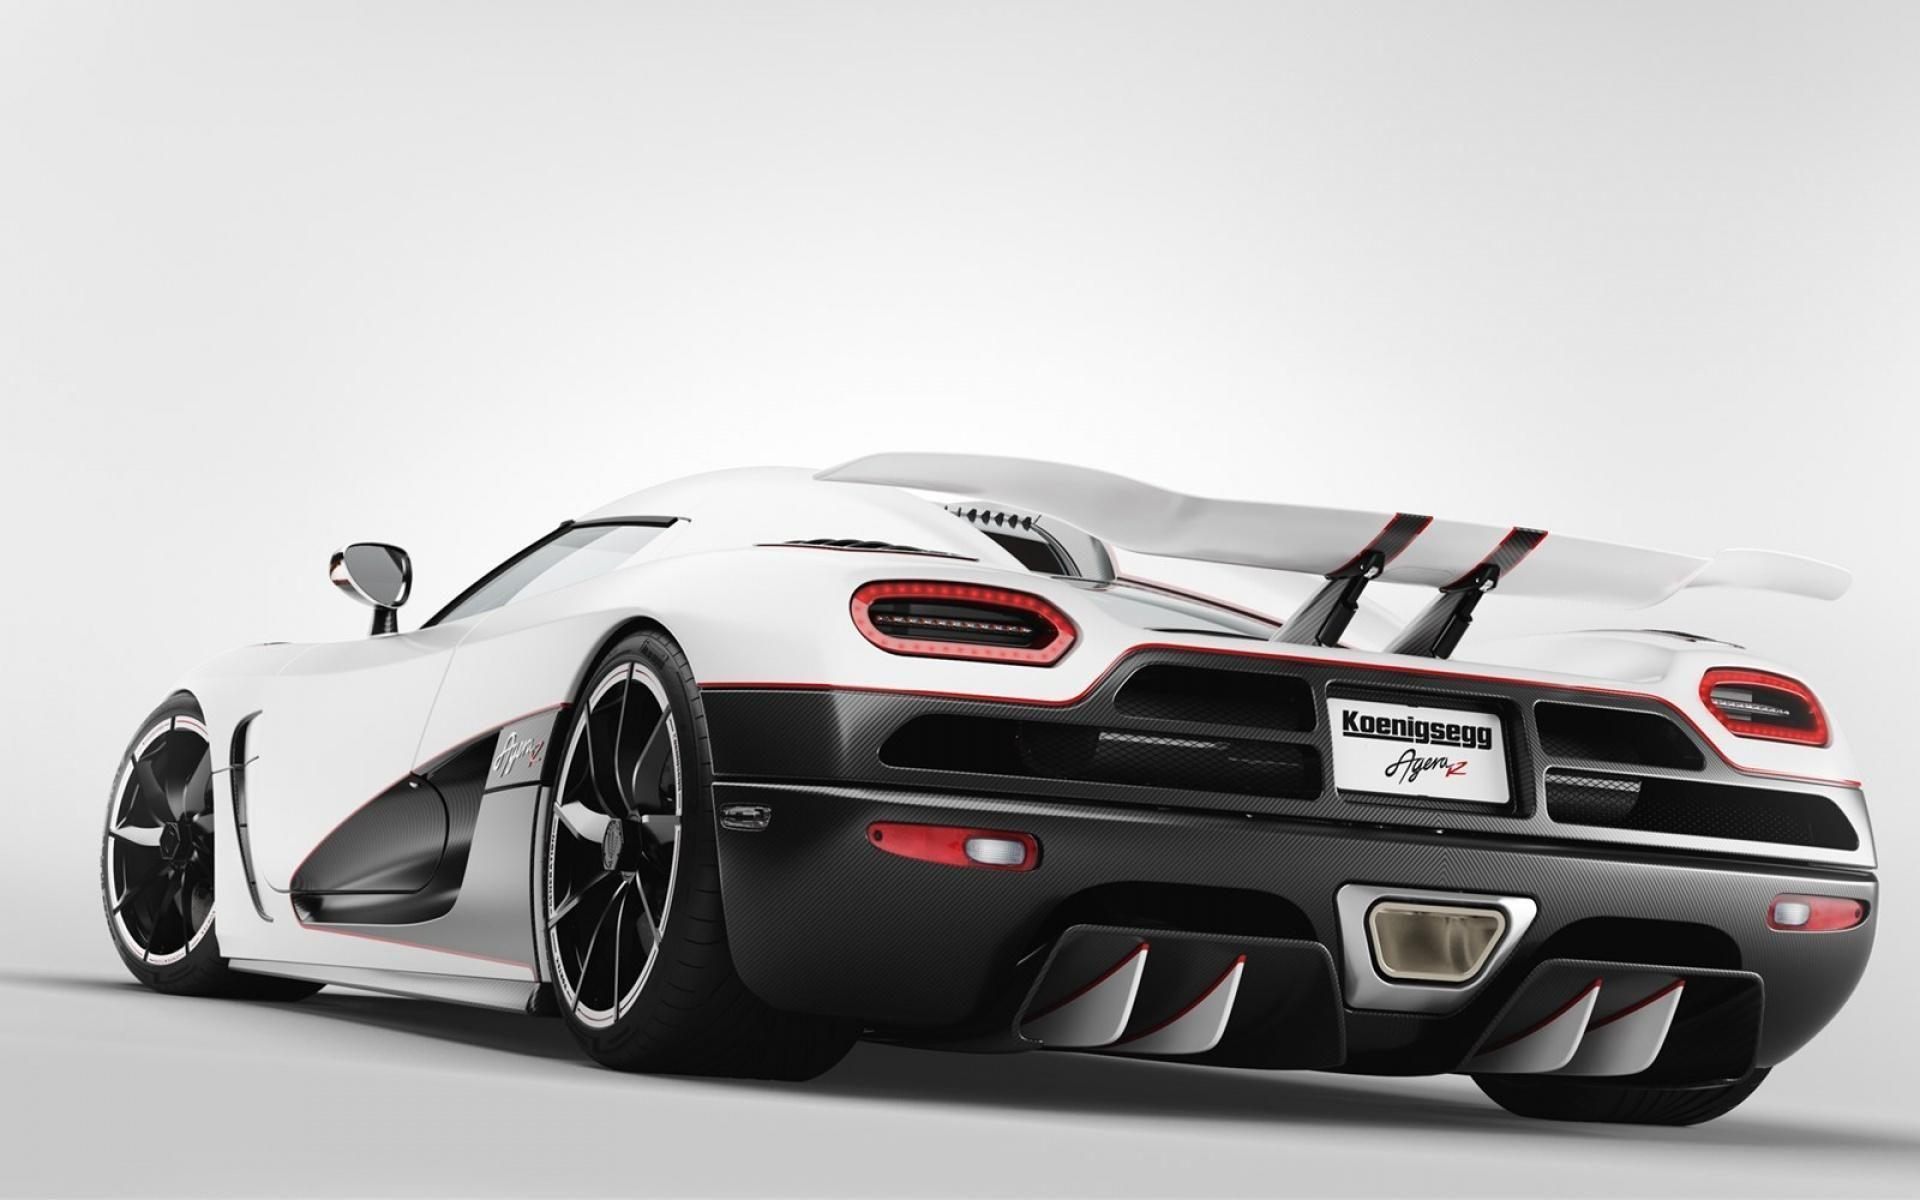 Koenigsegg Agera R wallpapers | Koenigsegg Agera R stock photos